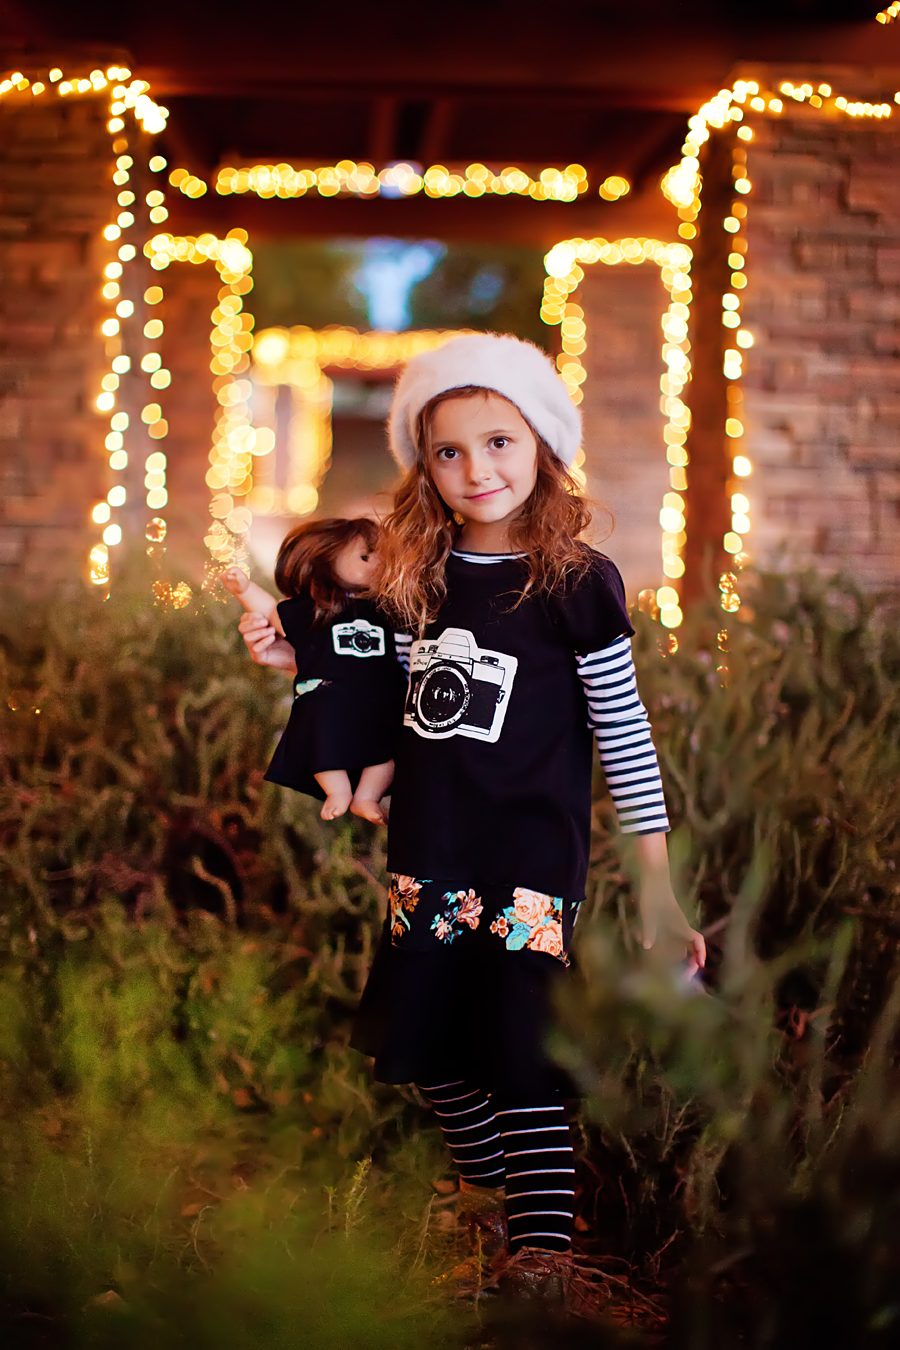 Great for all seasons! Photography by Laura Winslow Photography via lilblueboo.com